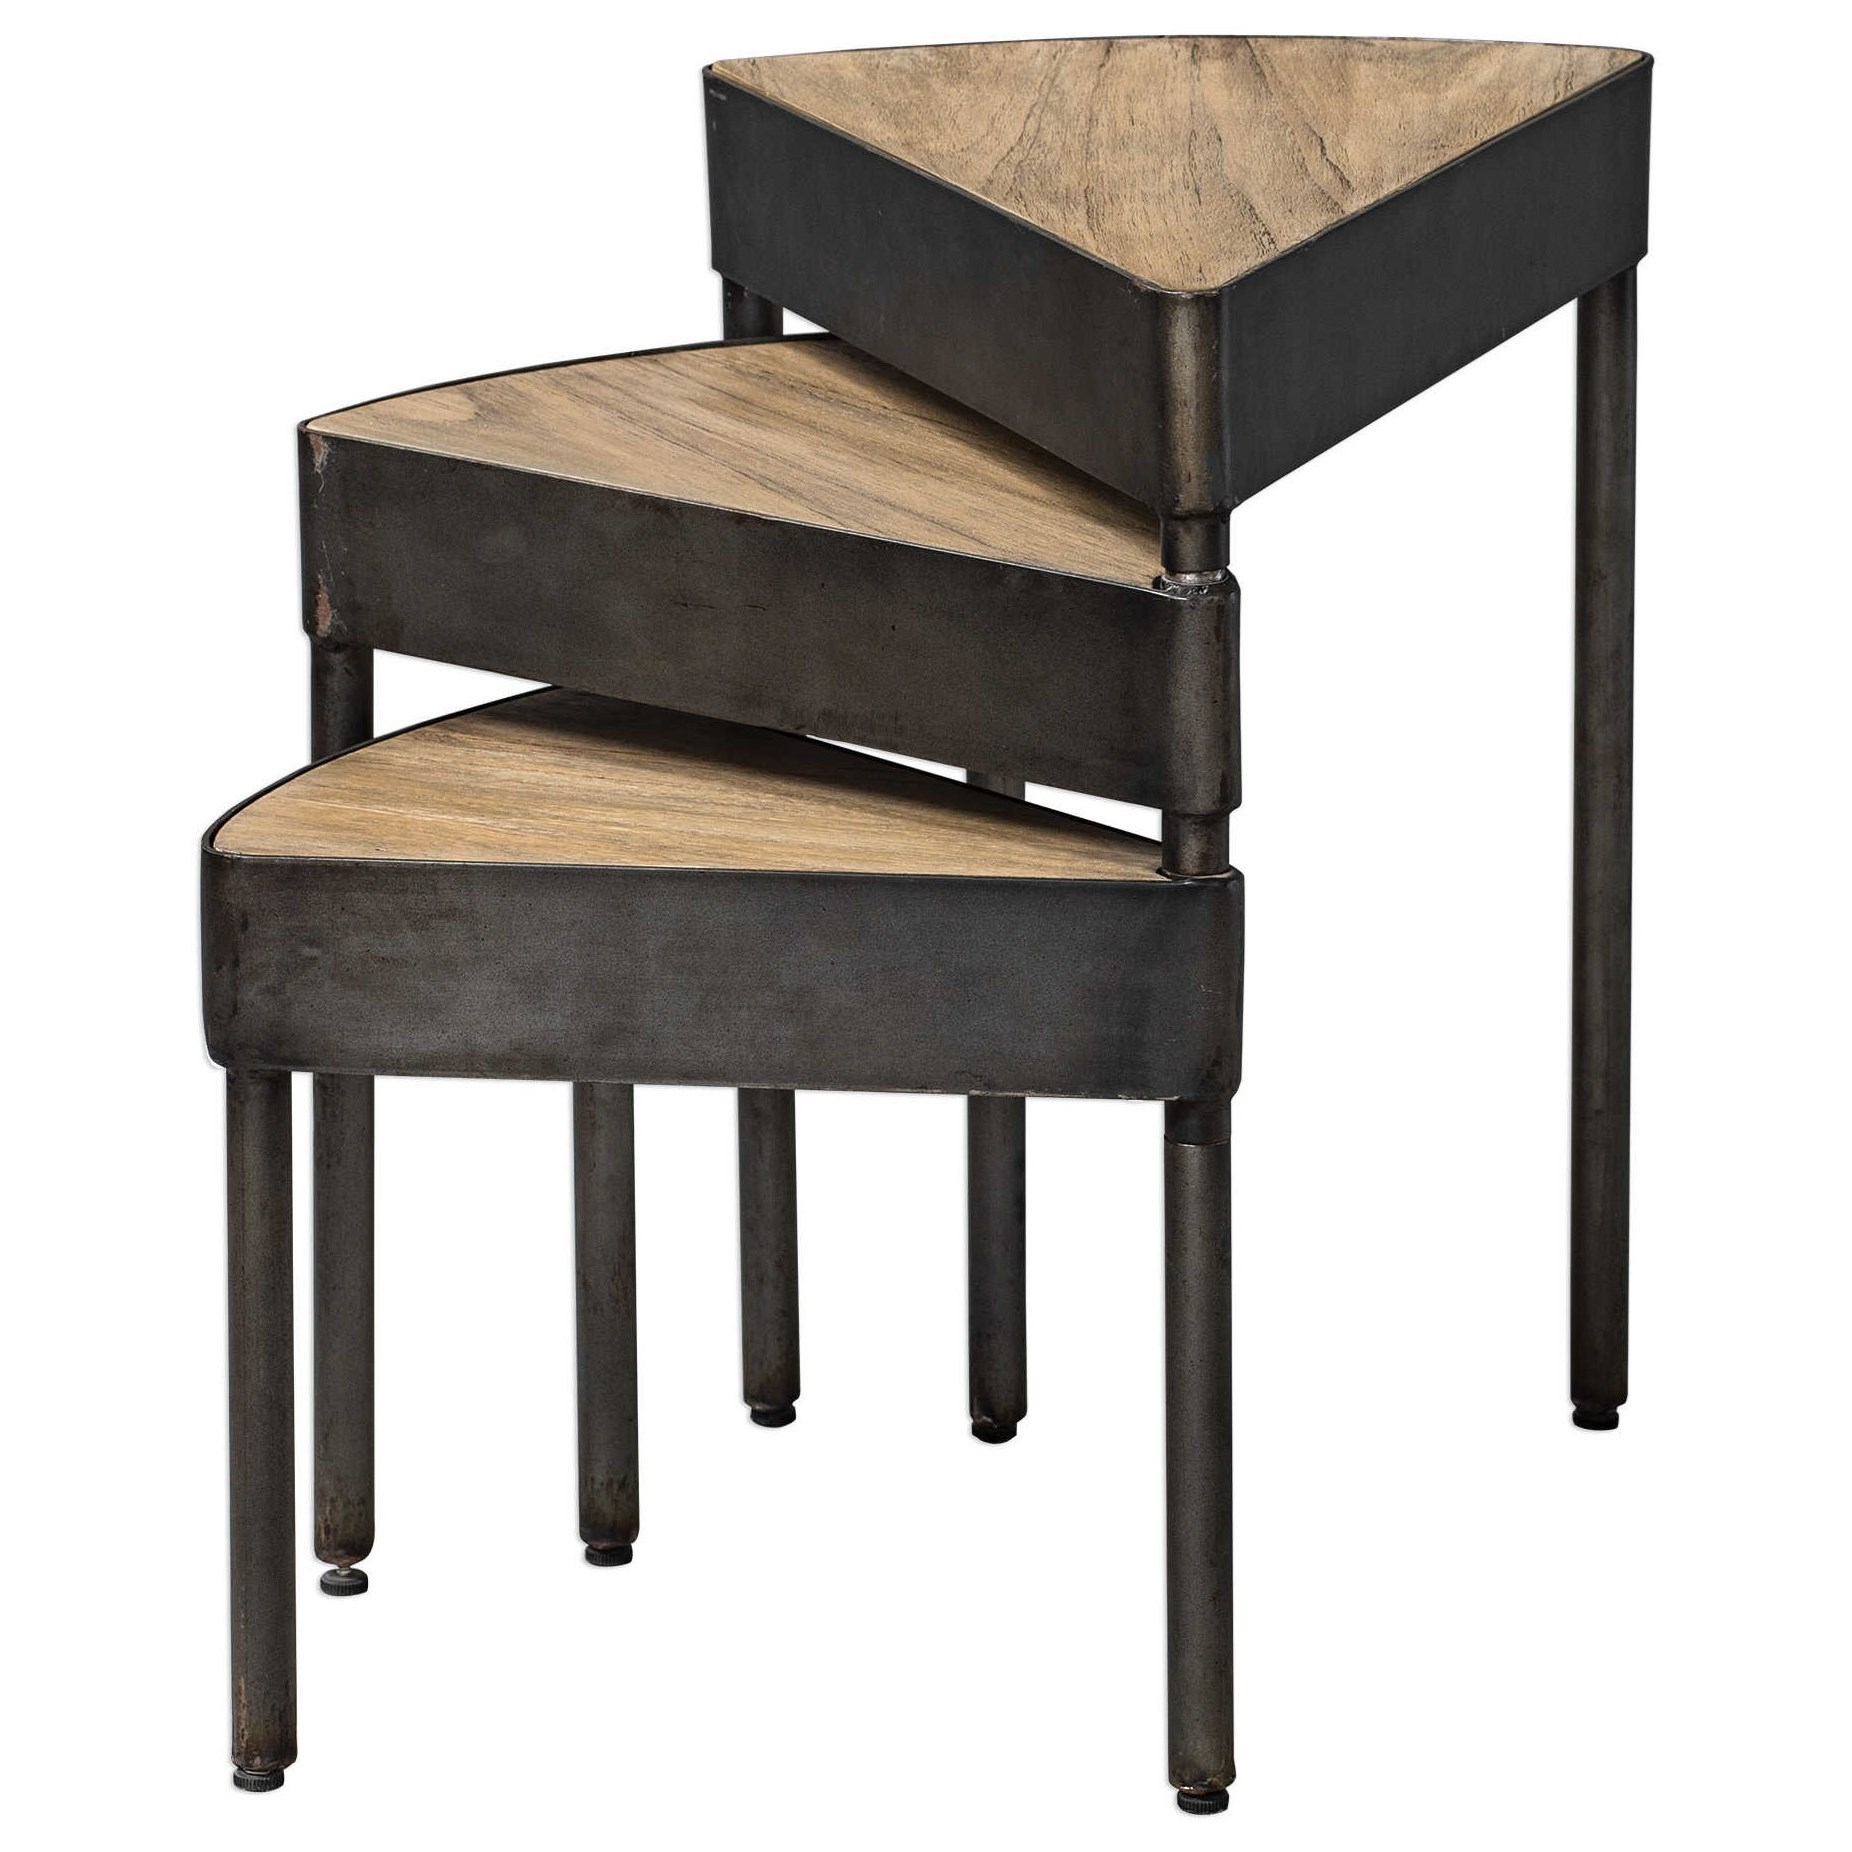 Accent Furniture - Occasional Tables Akito Nesting Table by Uttermost at Story & Lee Furniture